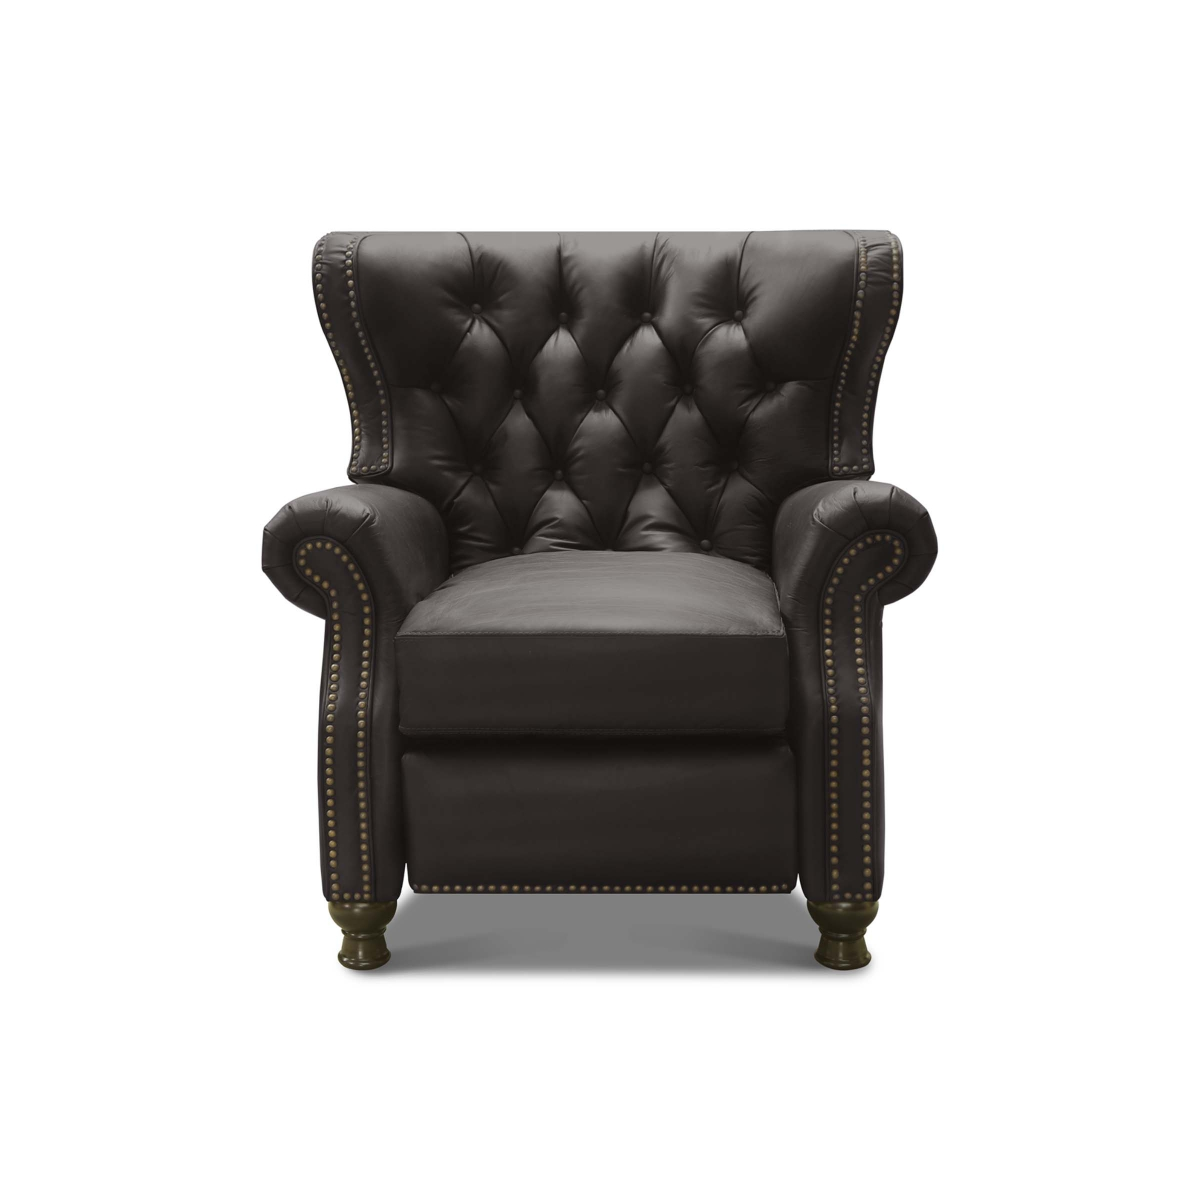 CHURCHILL - 19 High Leg Recliner Stonewood Coal